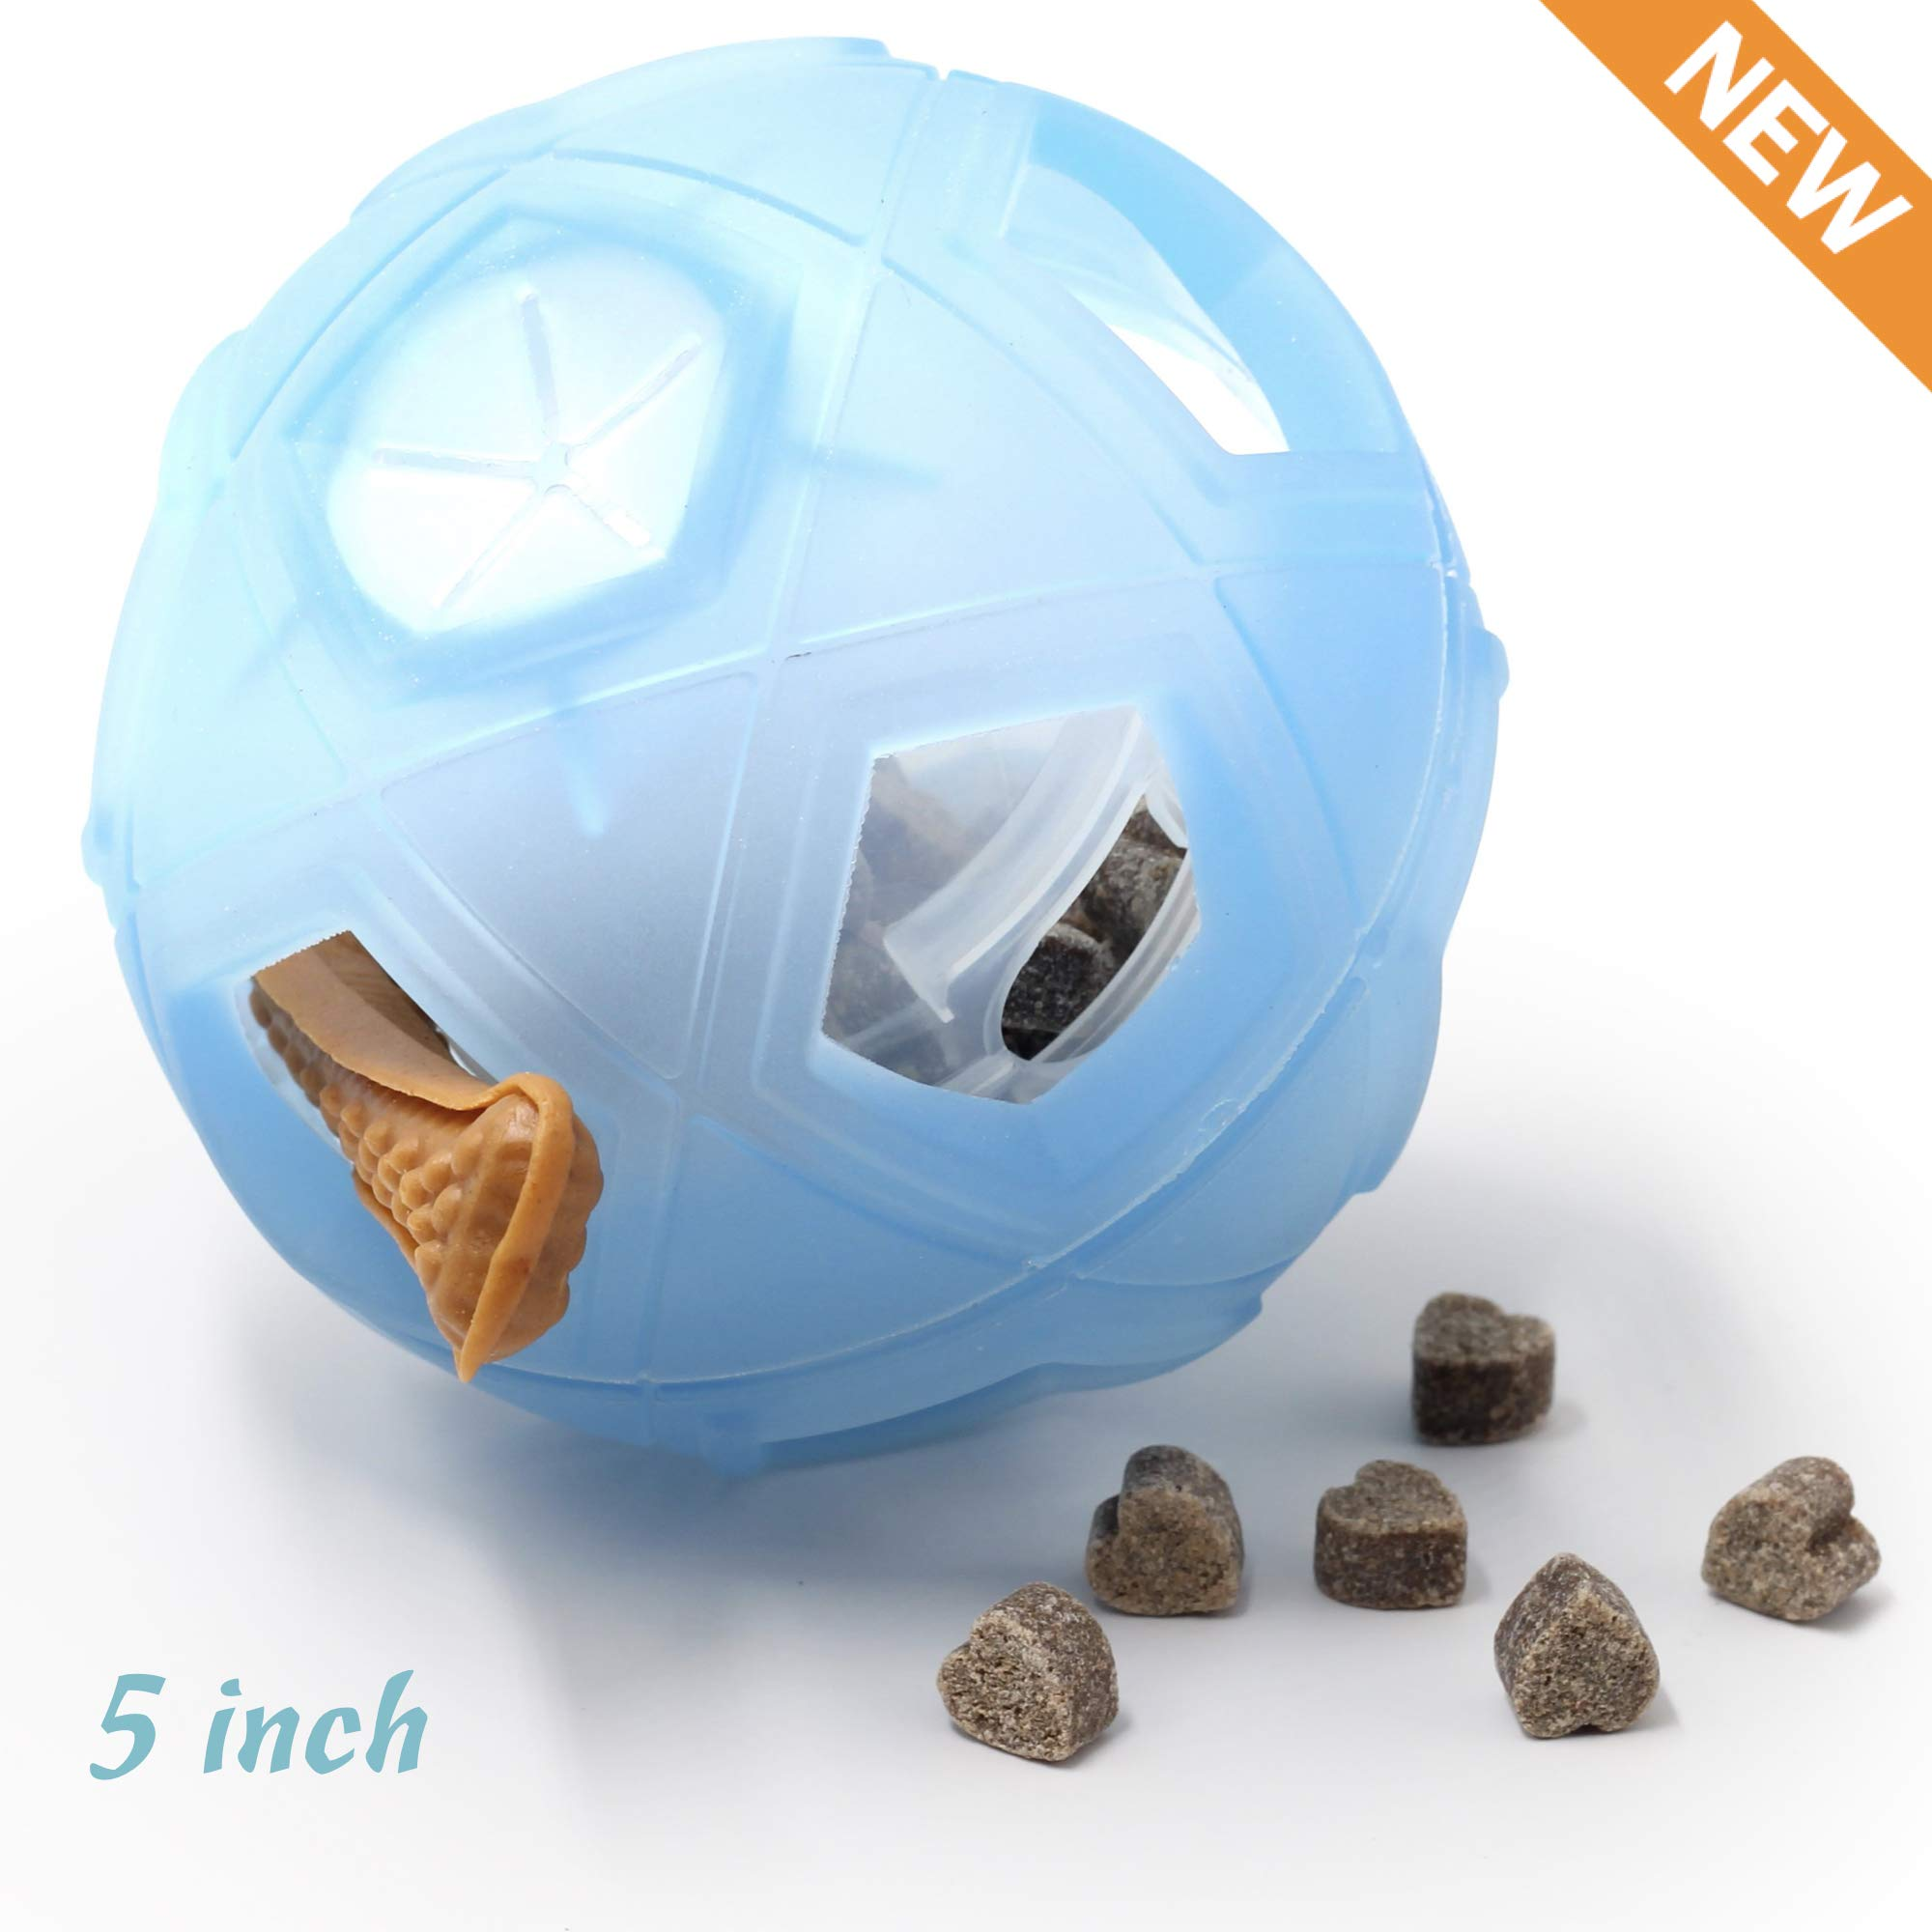 """LumoLeaf Dog Treat Ball, 5"""" Interactive IQ Treat Dispensing Ball Toy with Adjustable Difficulty Setting for Small to Medium Dogs and Cats."""